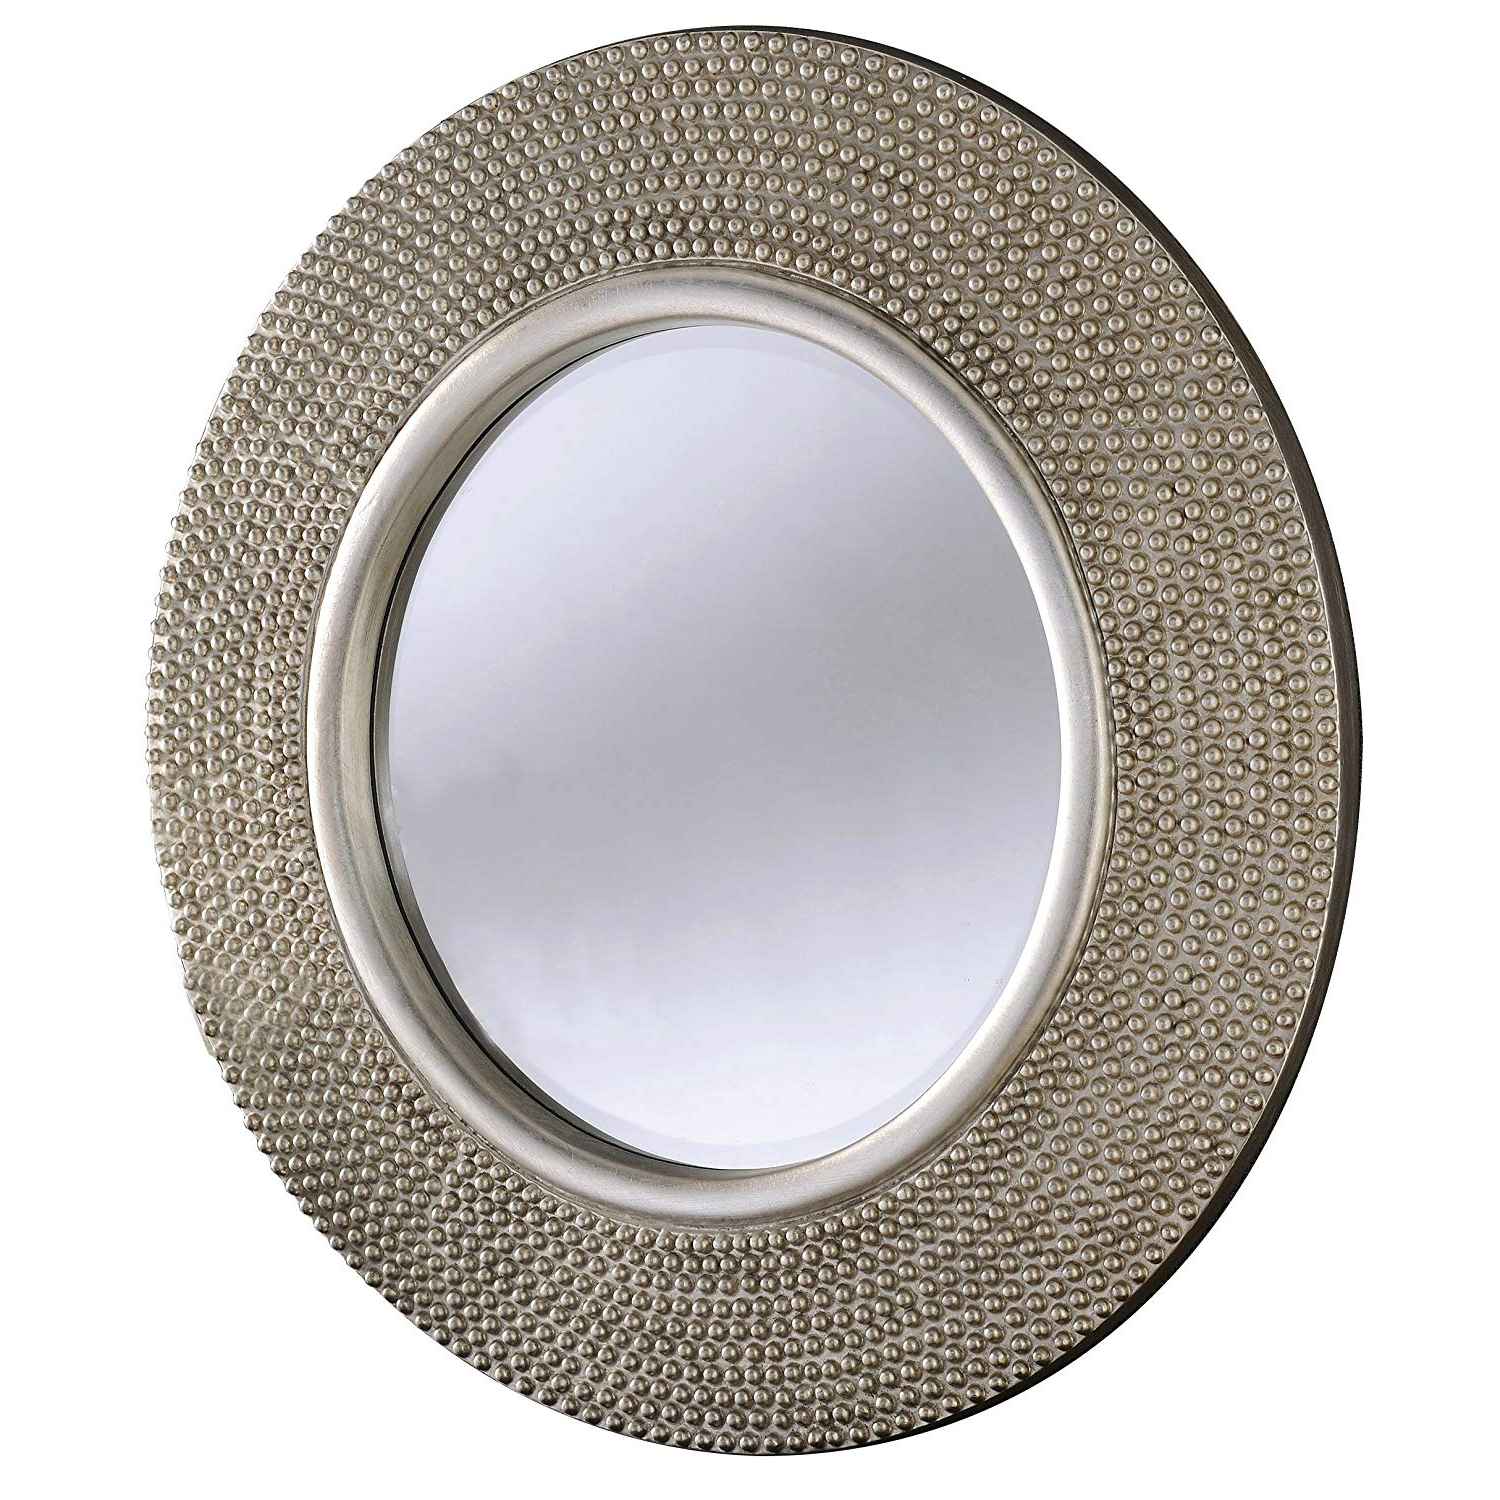 """Champagne Wall Mirrors Inside Widely Used Barcelona Trading Rome Large Round New Wall Mirror Modern Light Champagne  Silver Frame 31"""" Diam (View 17 of 20)"""